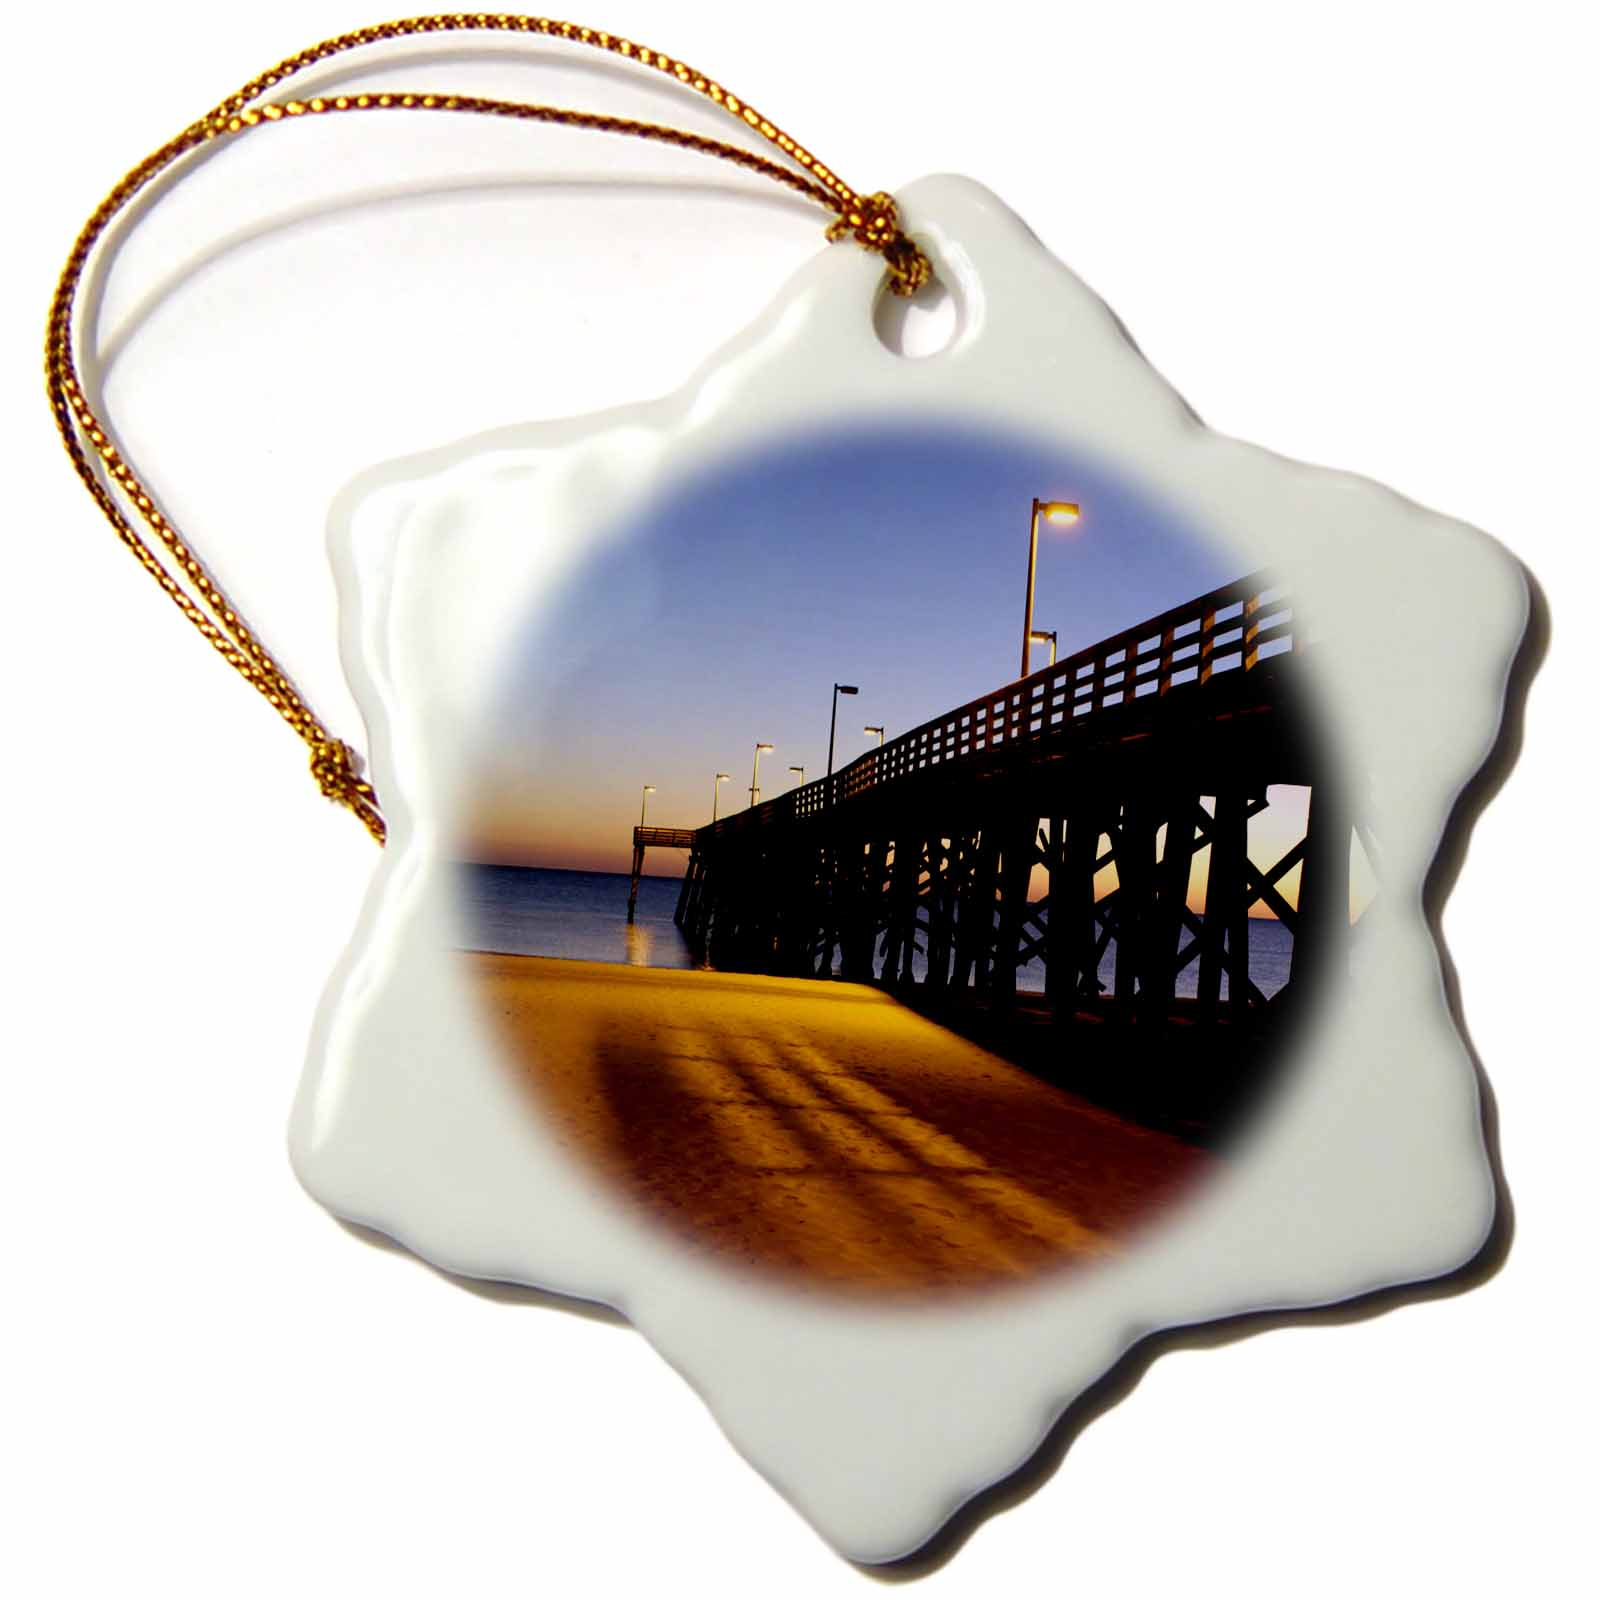 3dRose Public Pier, Gulf of Mexico, Panama City, Florida - US10 FVI0111 - Franklin Viola, Snowflake Ornament, Porcelain, 3-inch